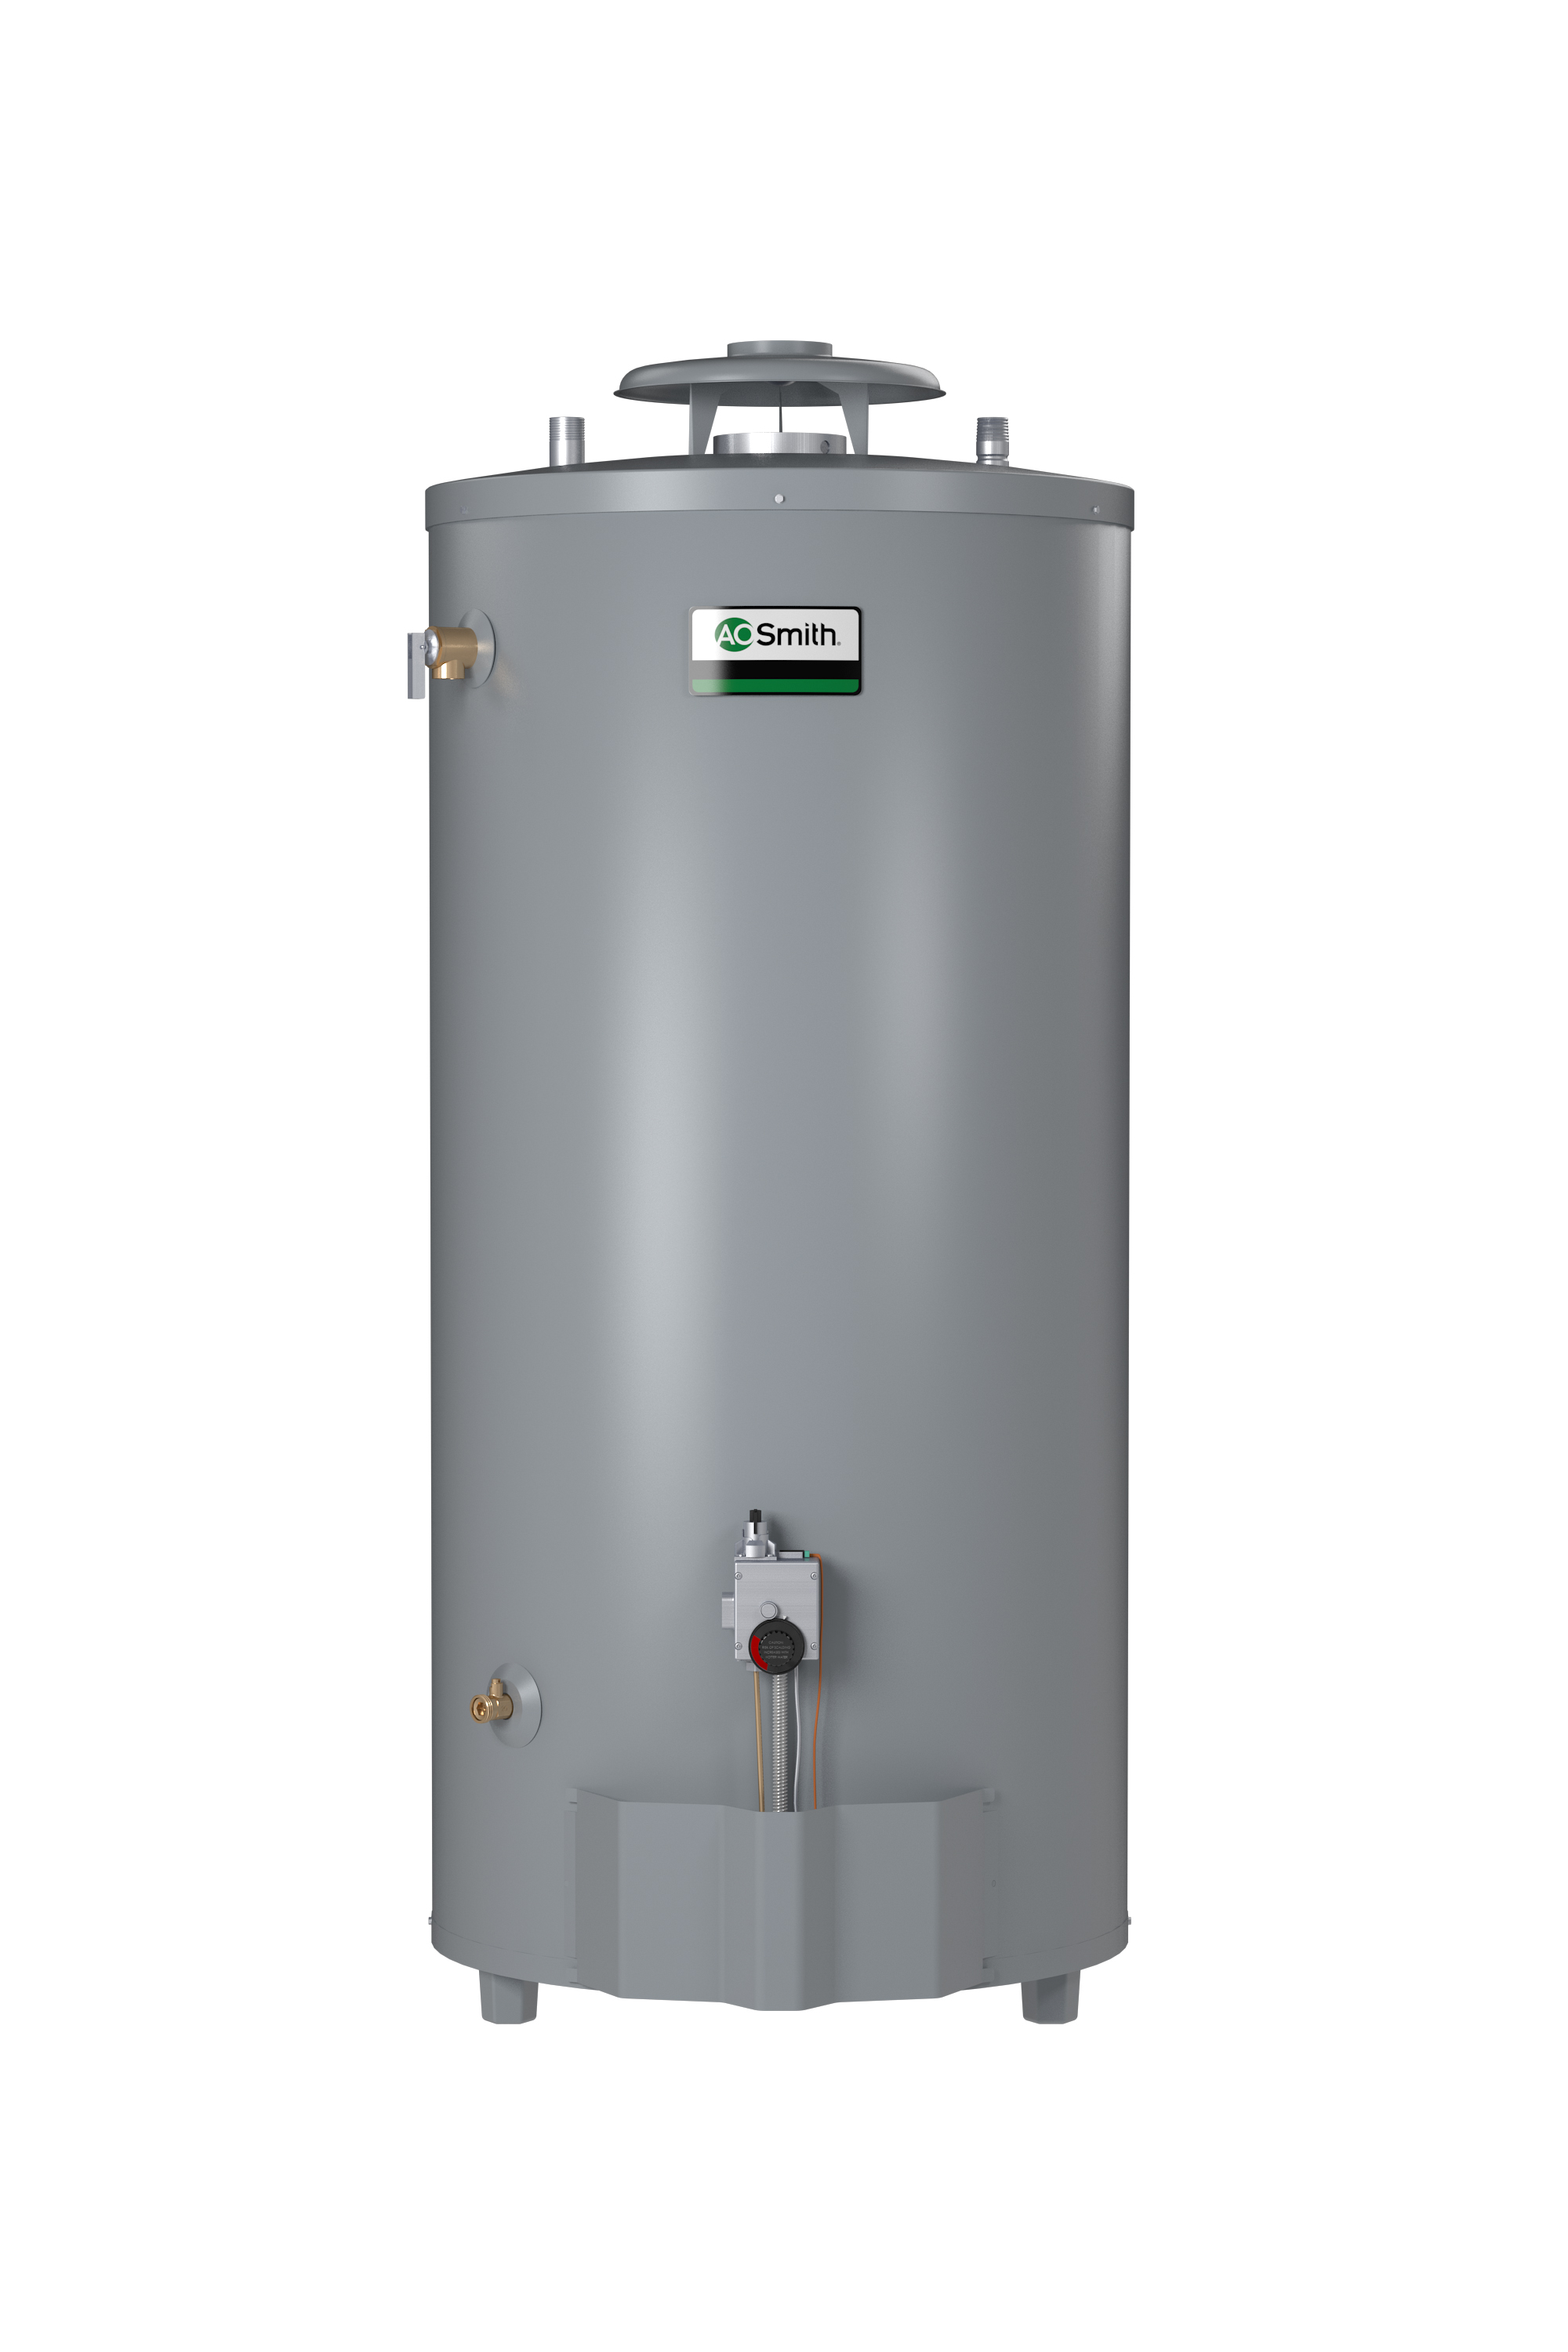 AO SMITH BT-100: 98 GALLON, 75,100 BTU,  4inch VENT, CONSERVATIONIST SINGLE FLUE, LIGHT DUTY, NATURAL GAS COMMERCIAL WATER HEATER